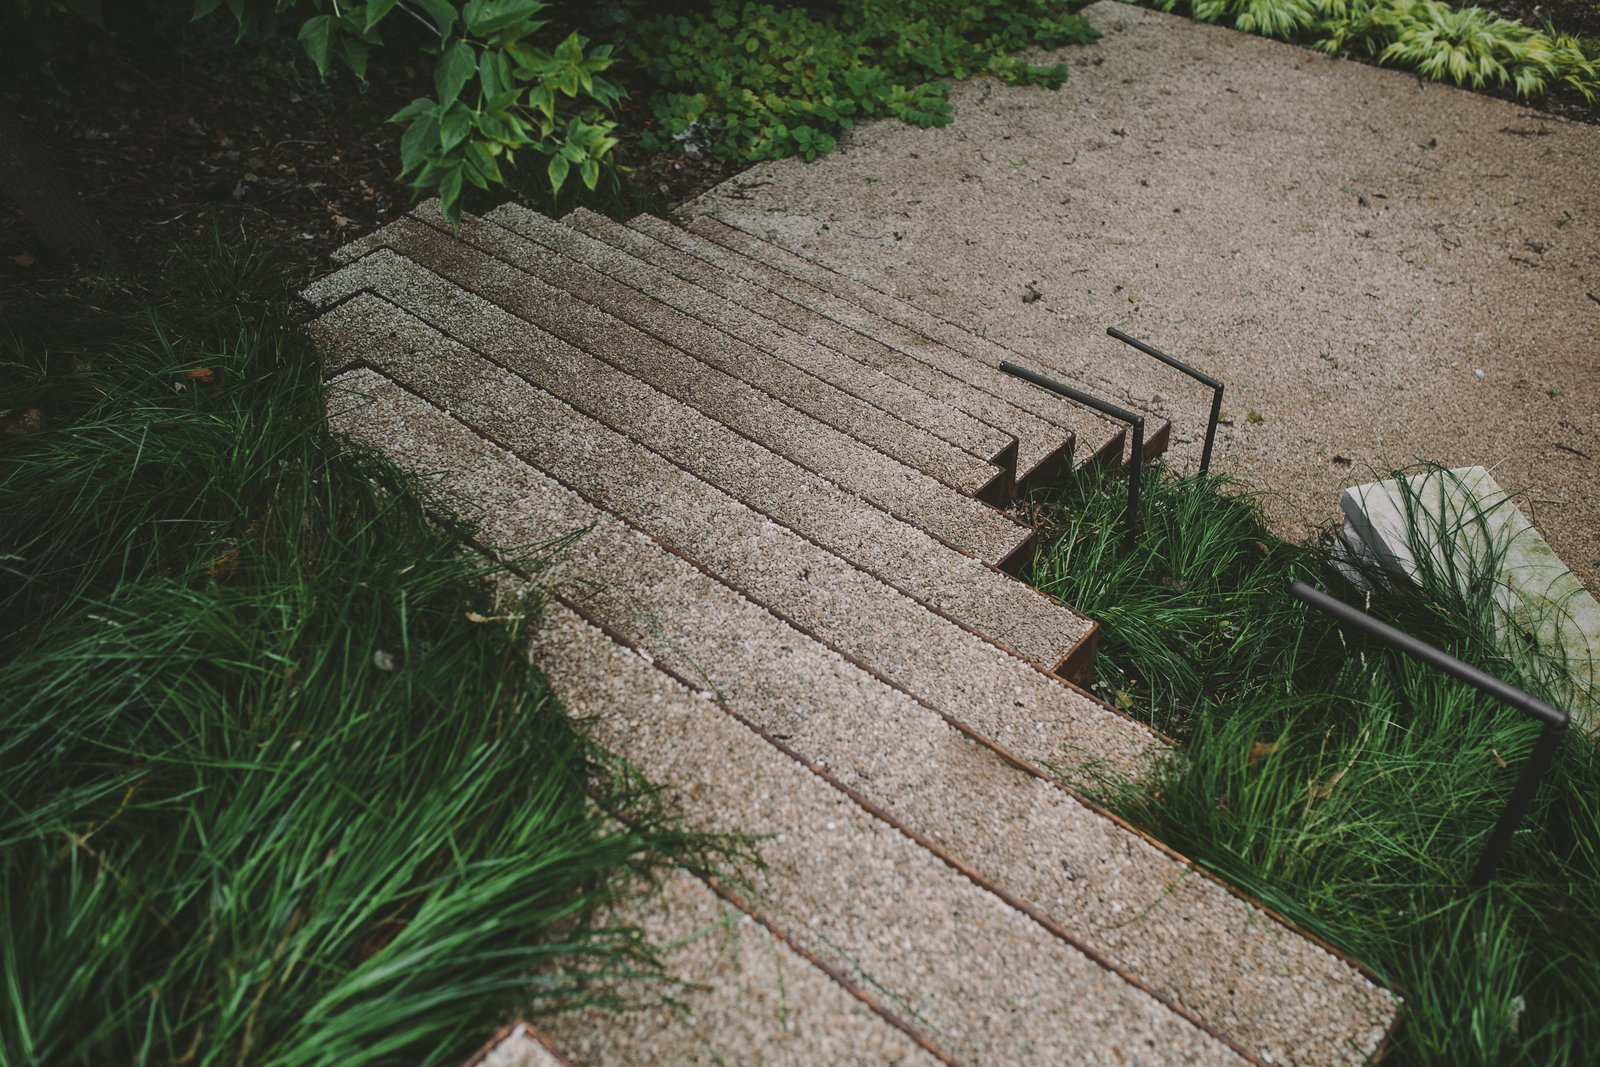 Steel stairs flowing through native grasses